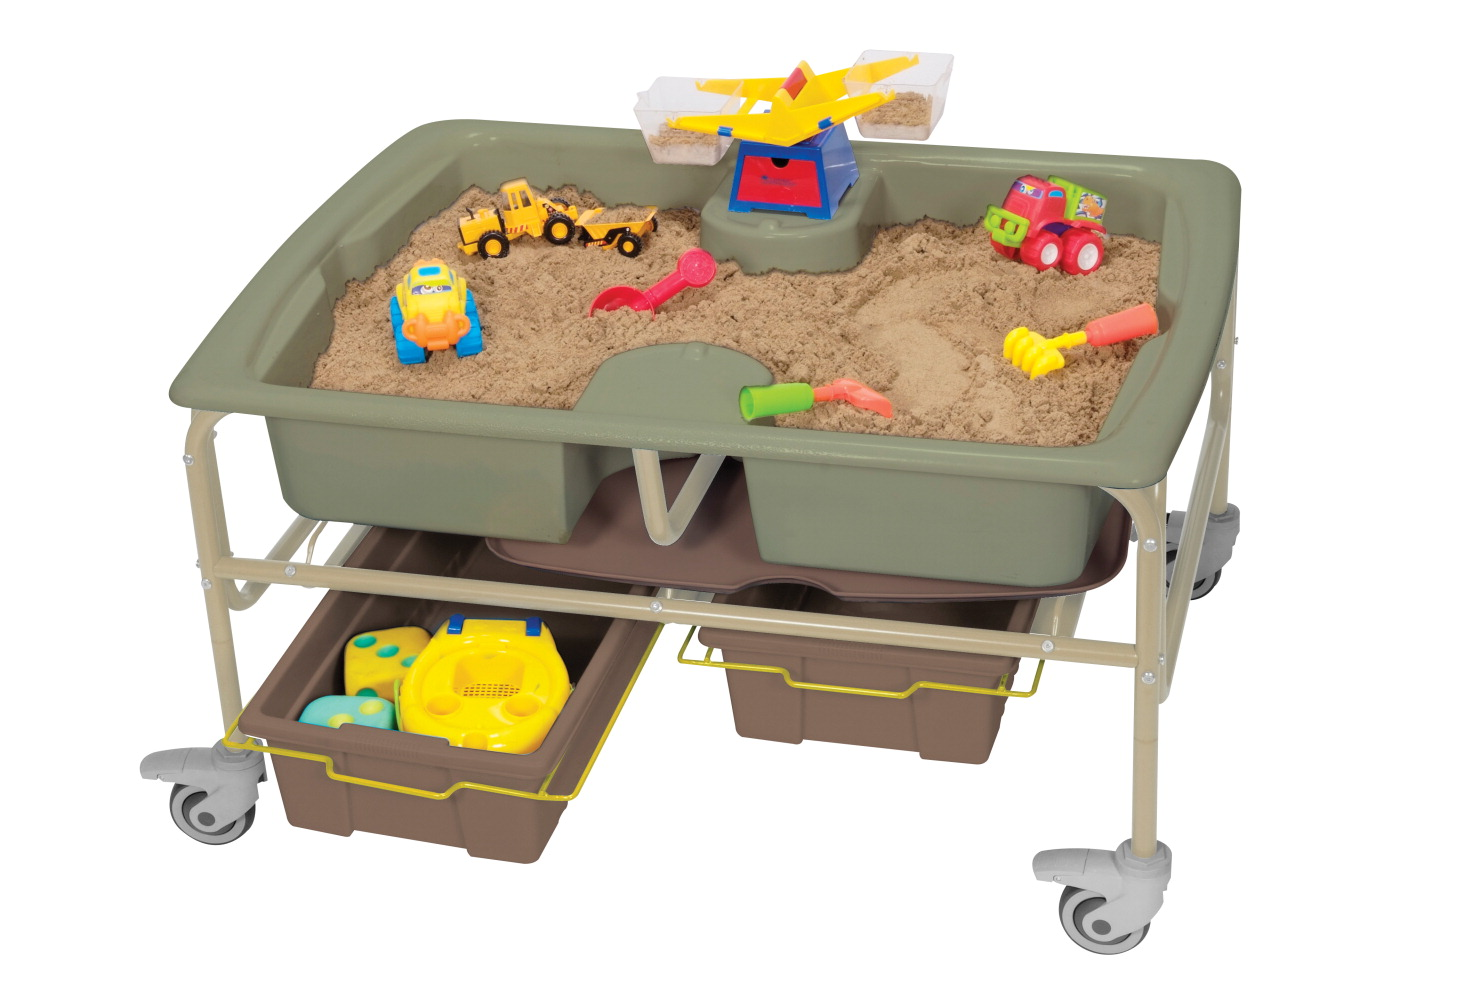 Copernicus Sand and Water Sensory Center, 42 x 30 x 18 to 24 Inches